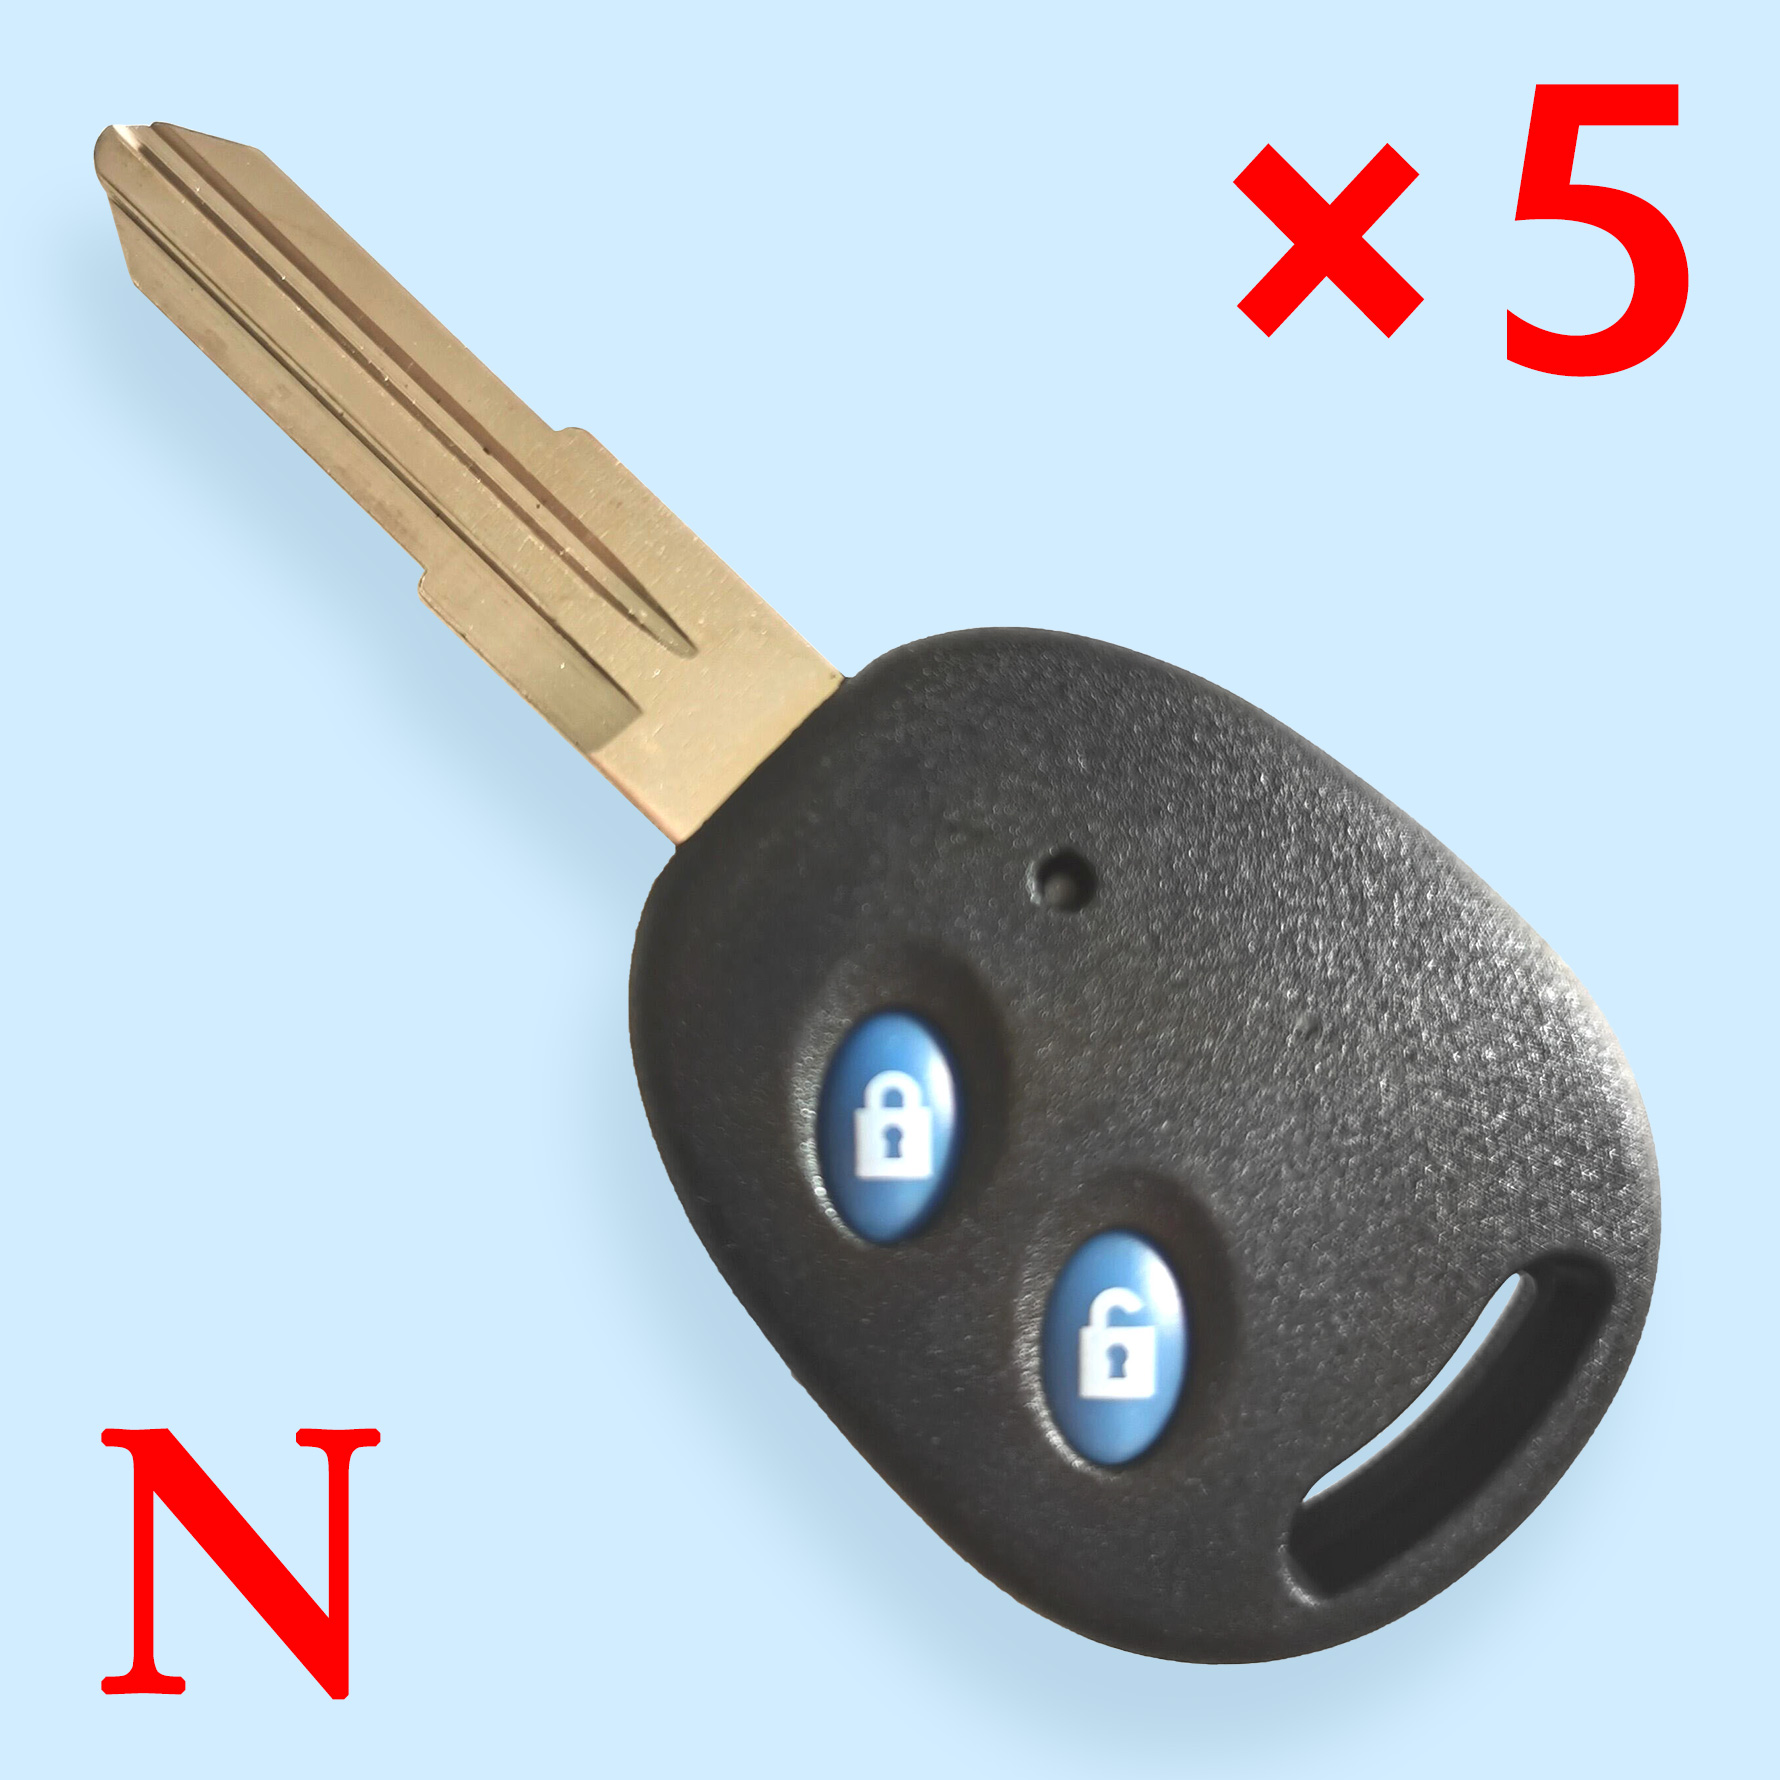 2 Buttons Remote Key Shell for Original Chevrolet LeChi- Pack of 5